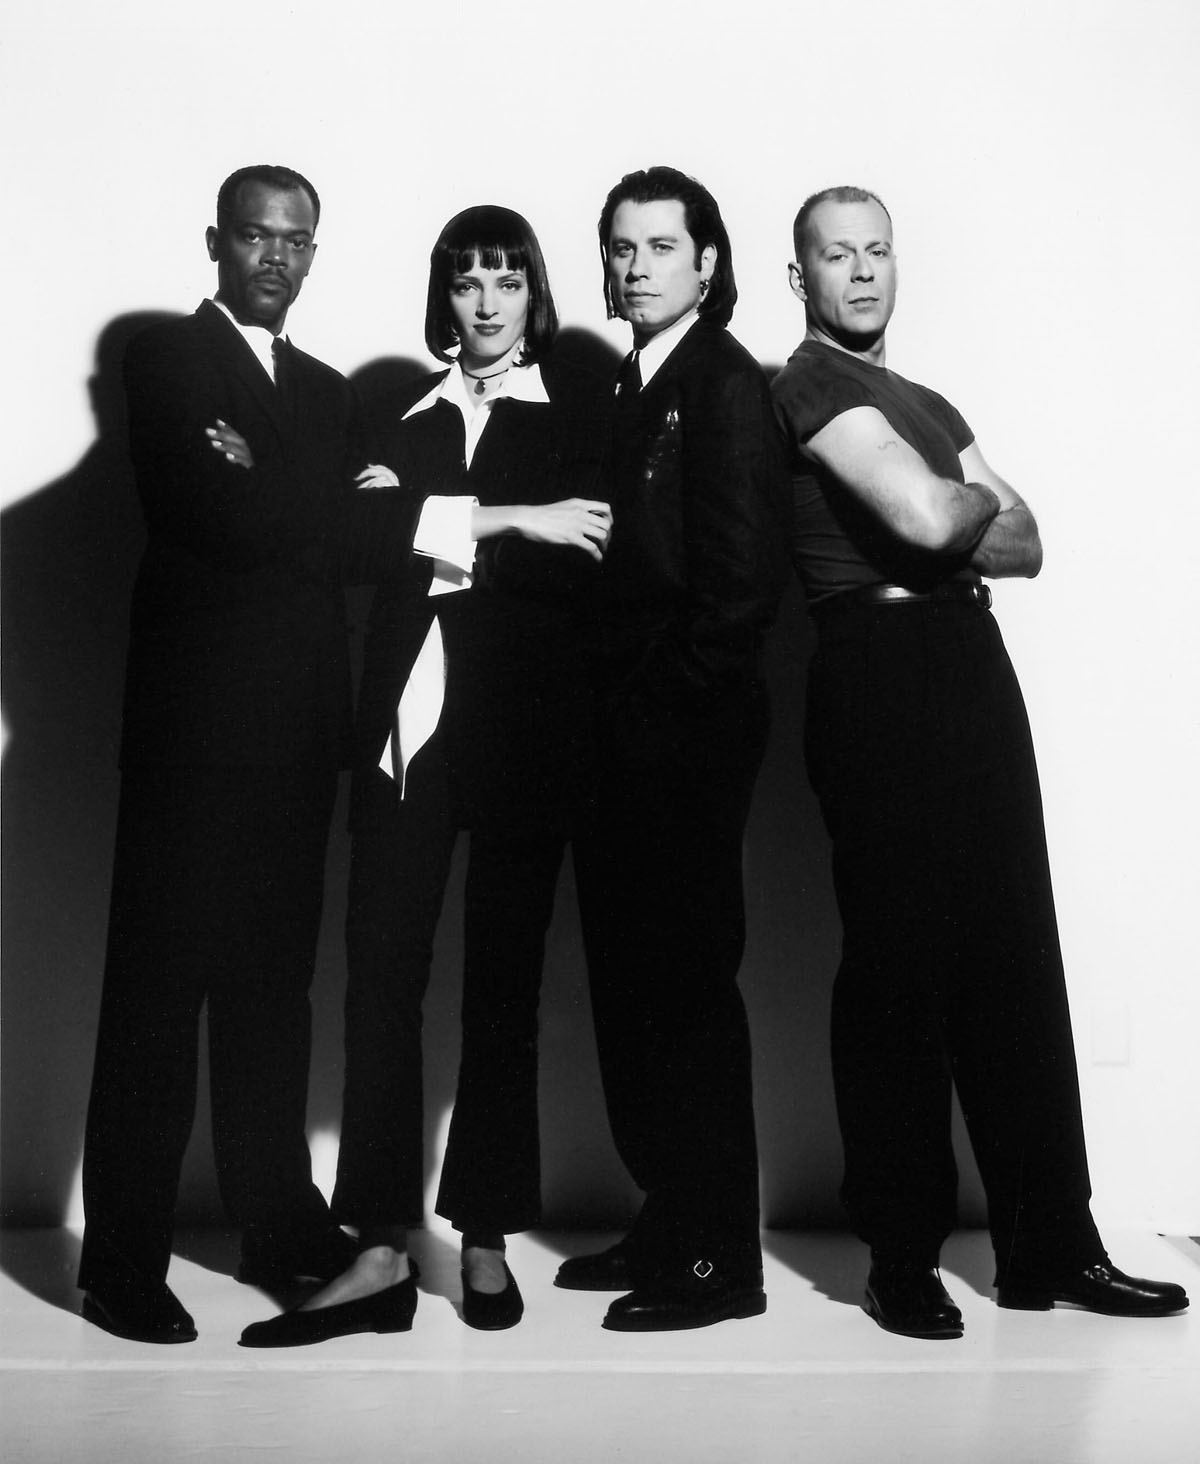 http://2.bp.blogspot.com/-WFzH31bDeQA/Tf59p3luwQI/AAAAAAAAATA/3LLfAMMqPzI/s1600/pulp-fiction-jackson-thurman-travolta-willis.jpg